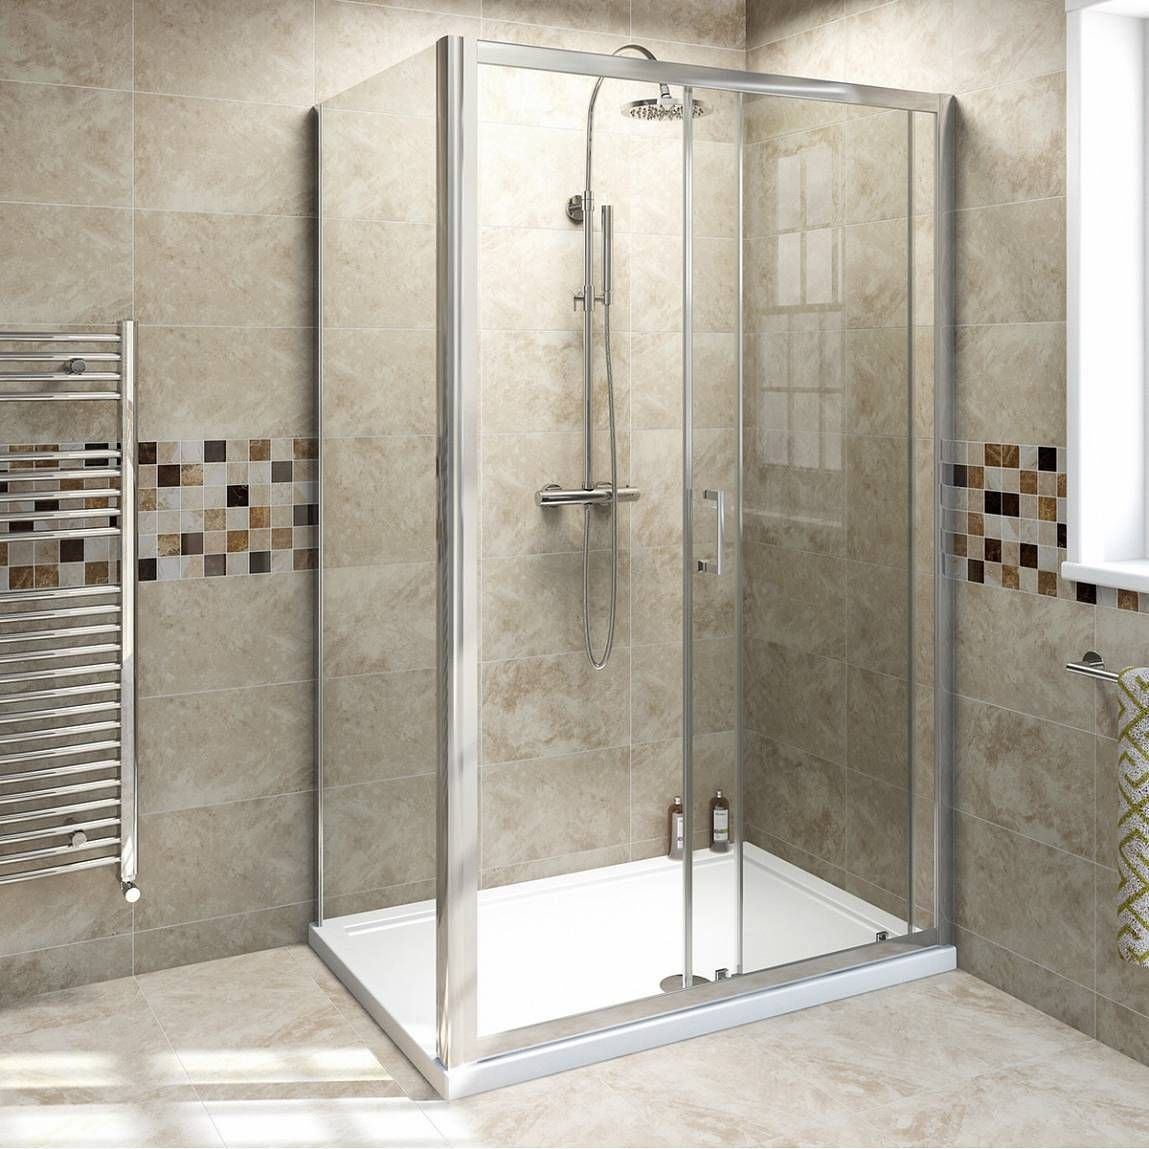 Bathroom Lights Victoria Plumb v6 sliding shower enclosure 1200 x 900 - victoria plumb